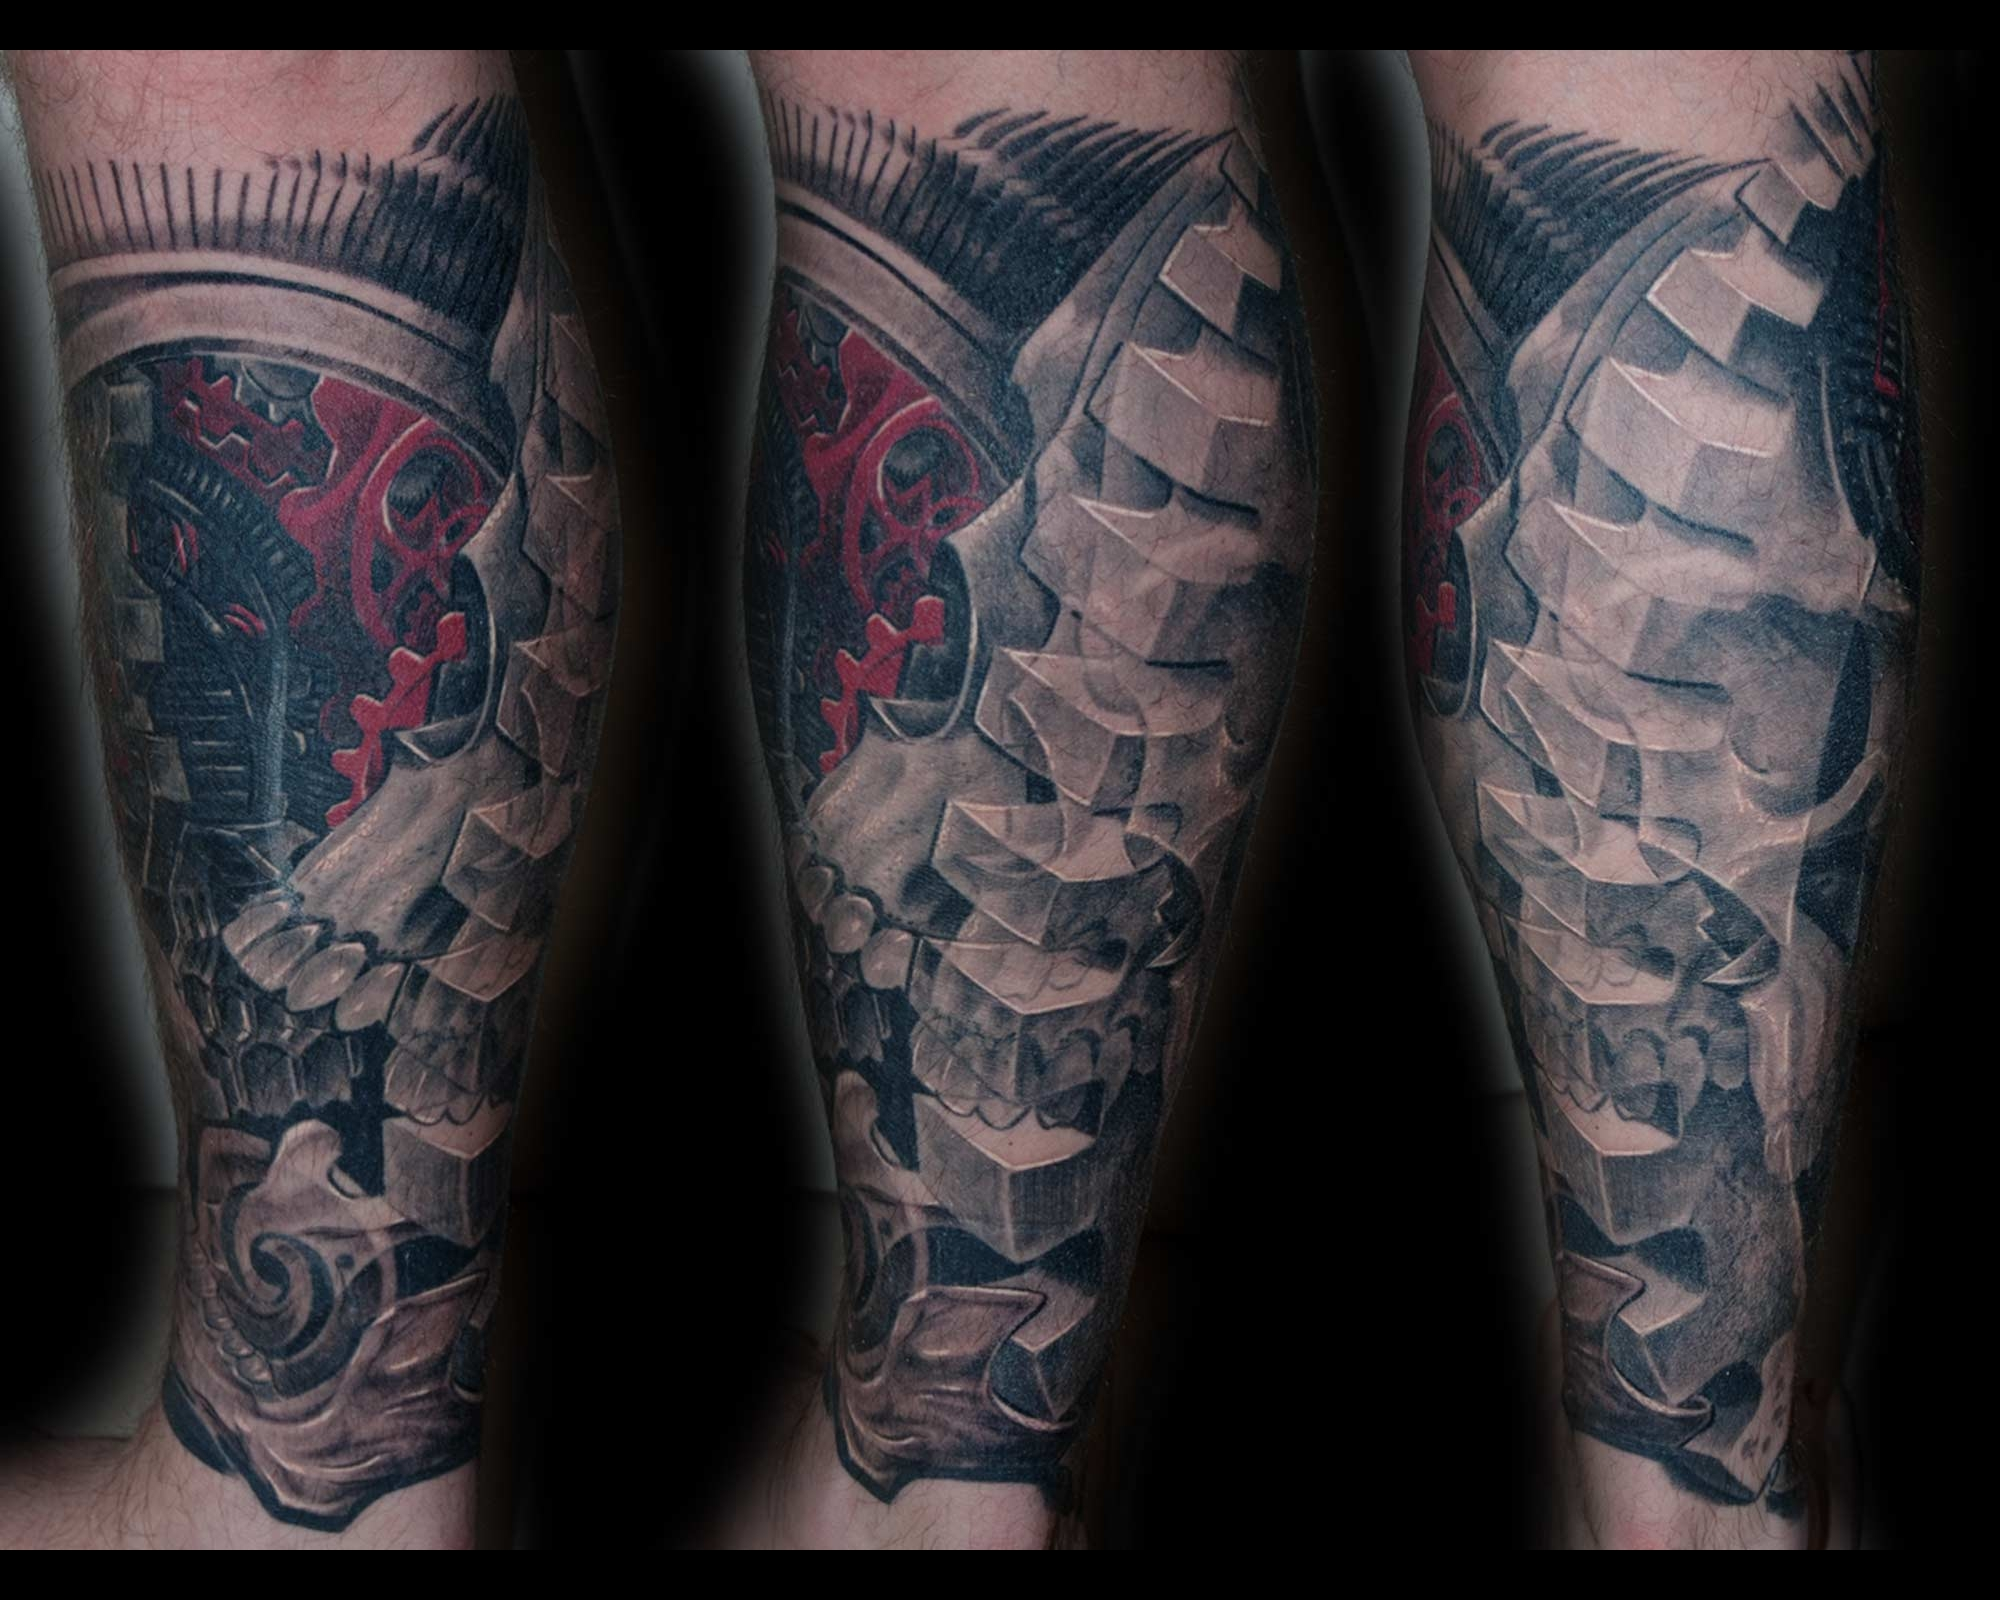 biomechanik-steampunk-schaedel-zahnrad-totenkopf-cover-up-tattoo-ueberdeckung-2